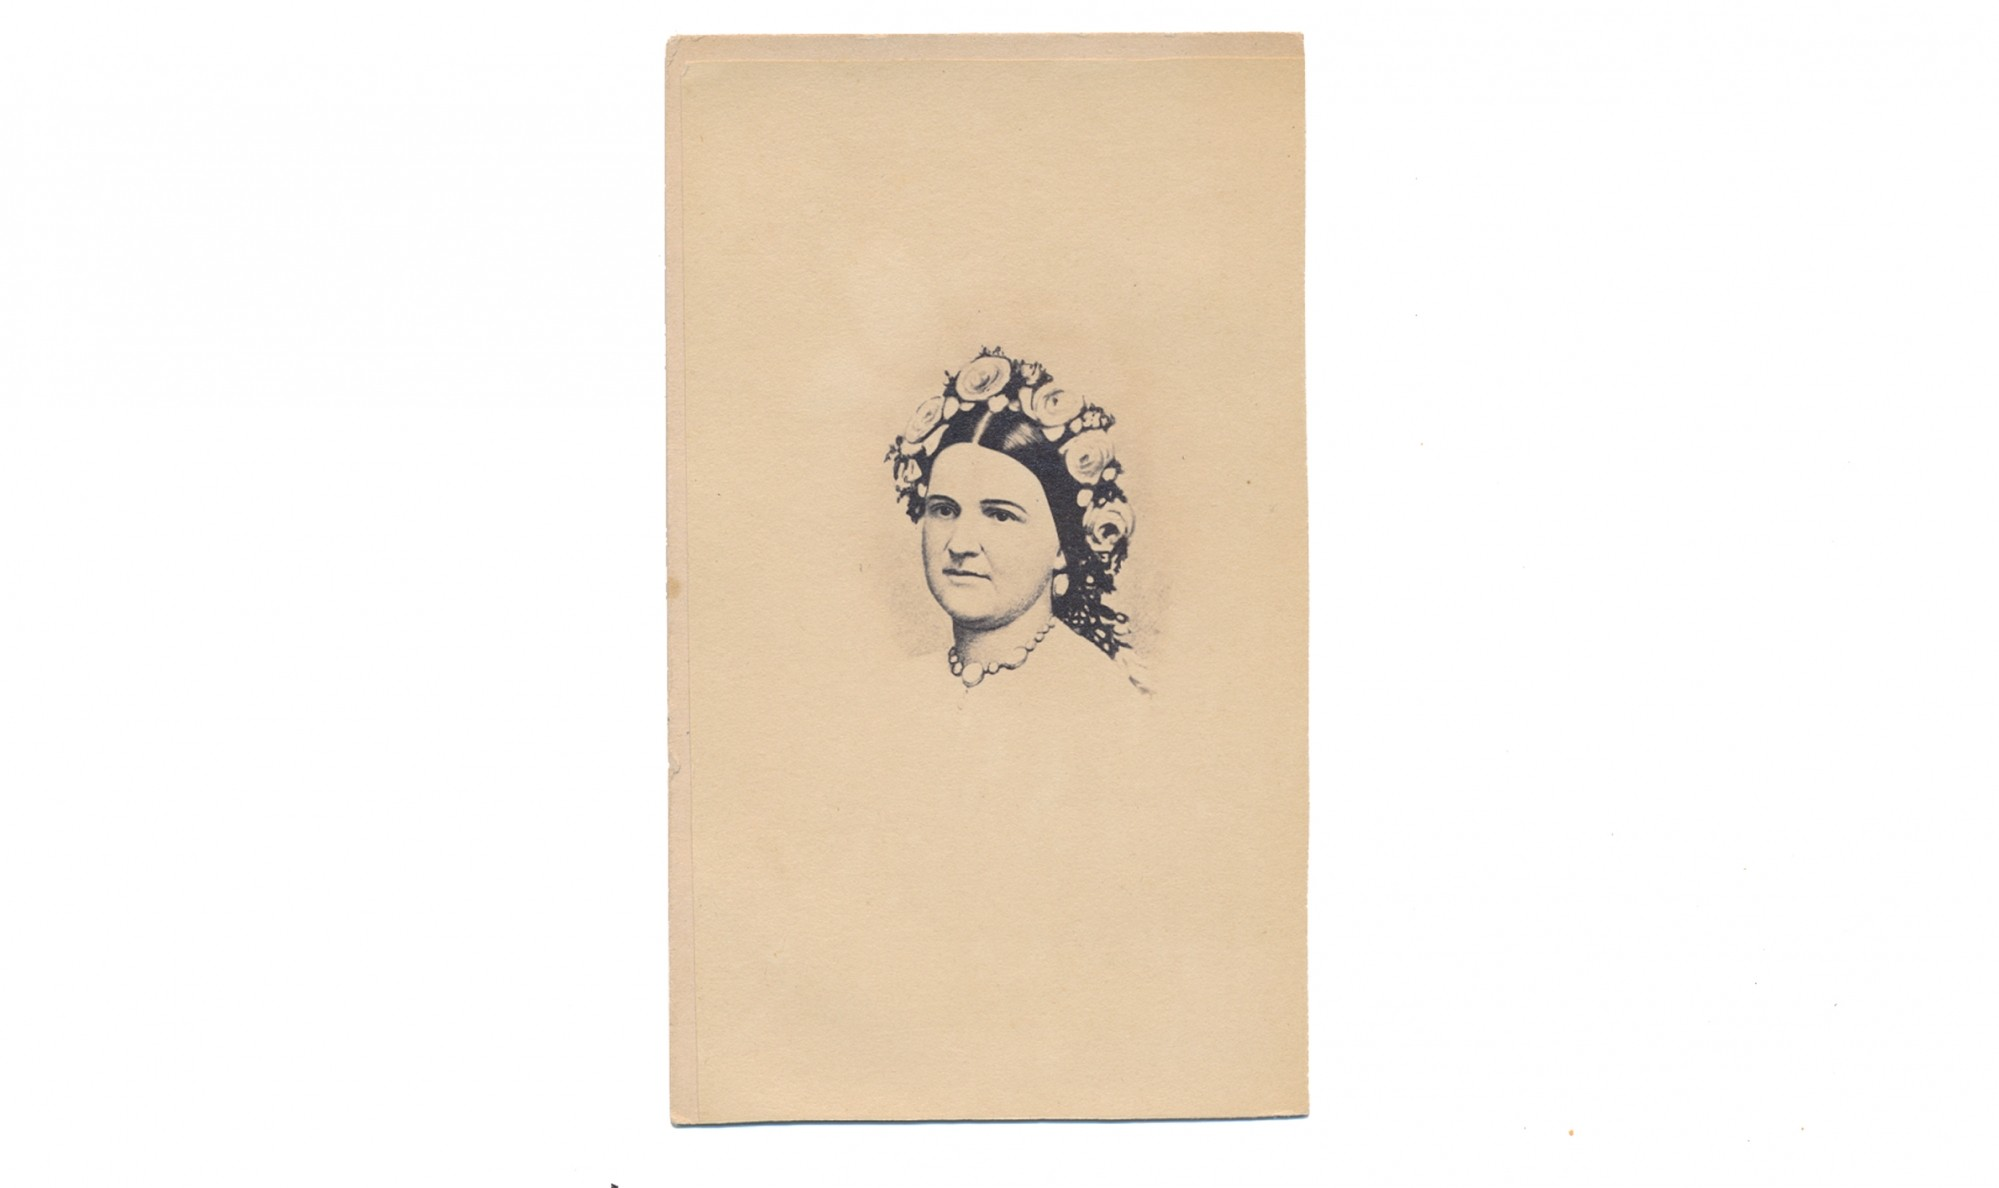 CDV OF MARY TODD LINCOLN